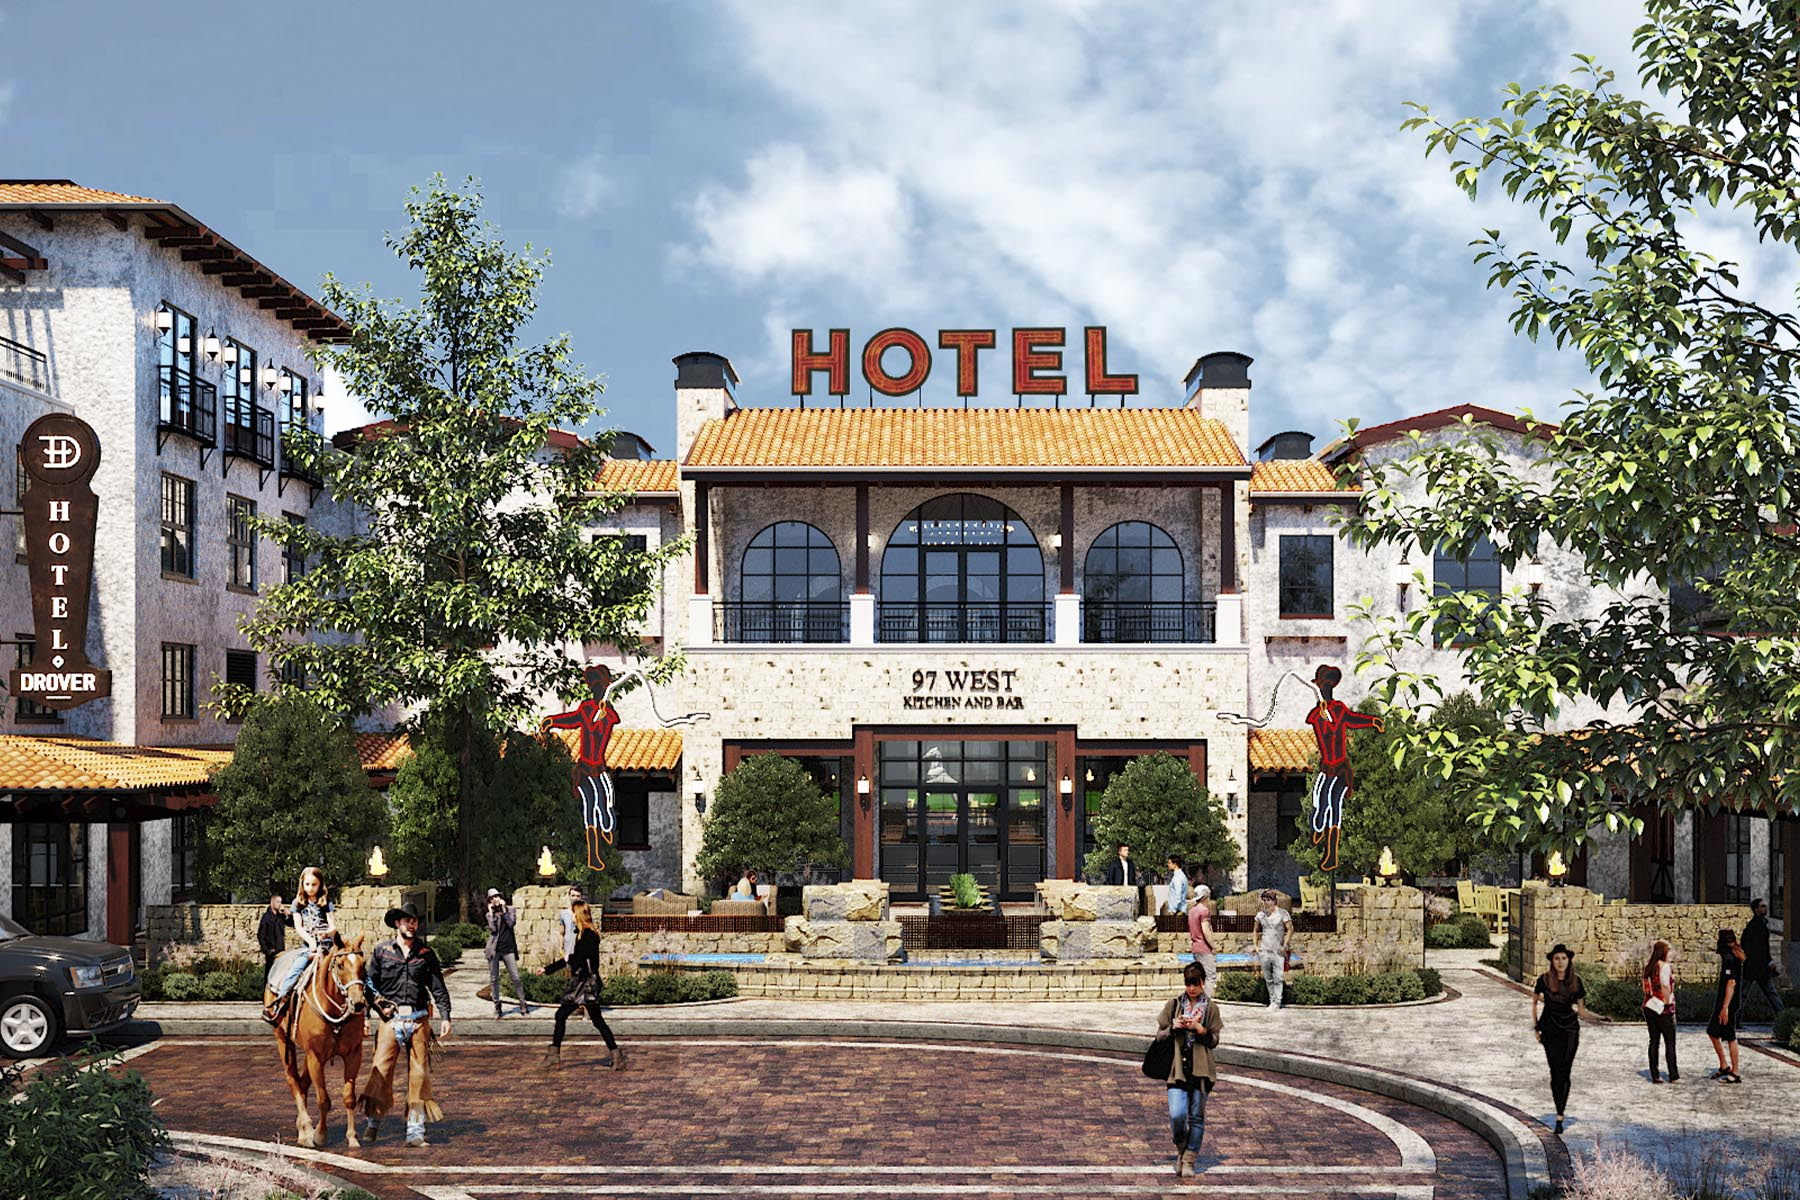 Hotel Drover Rendering